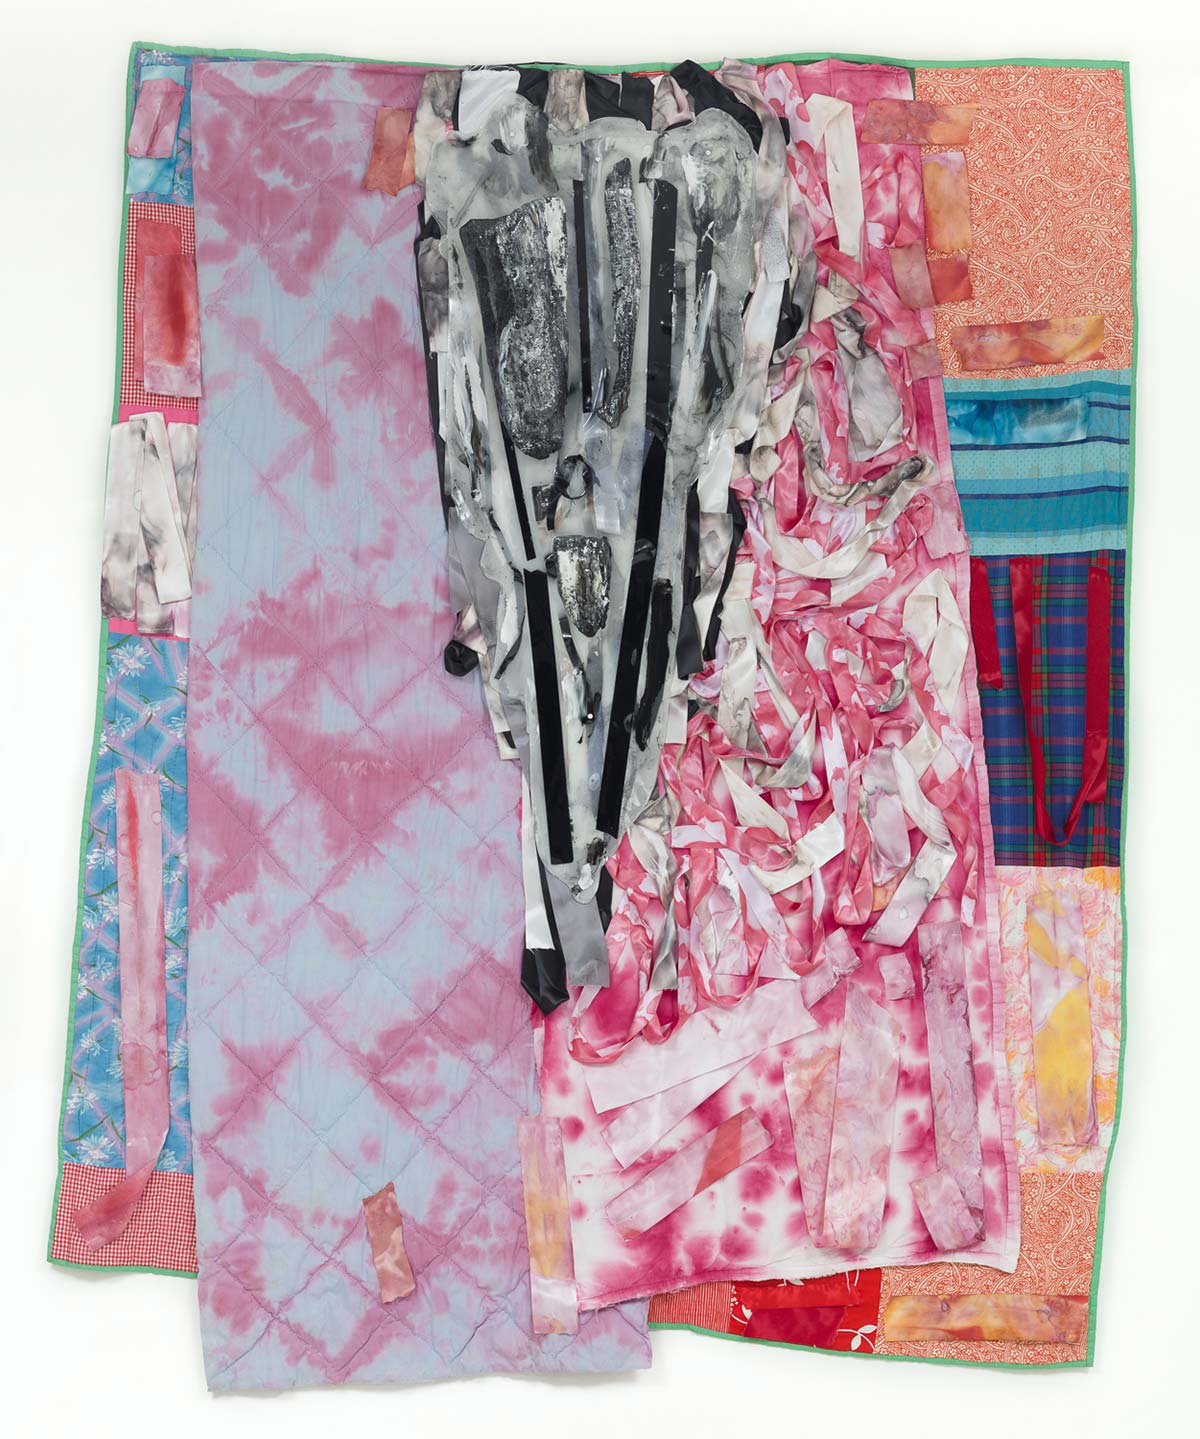 Ritual Heirloom 2, Champion Roses and Burnt Logs, 2017 87 x 69 inches, 2017, hand-stitched quilts, ribbon, fabric dye, charred logs, resin, acrylic paint and mixed media